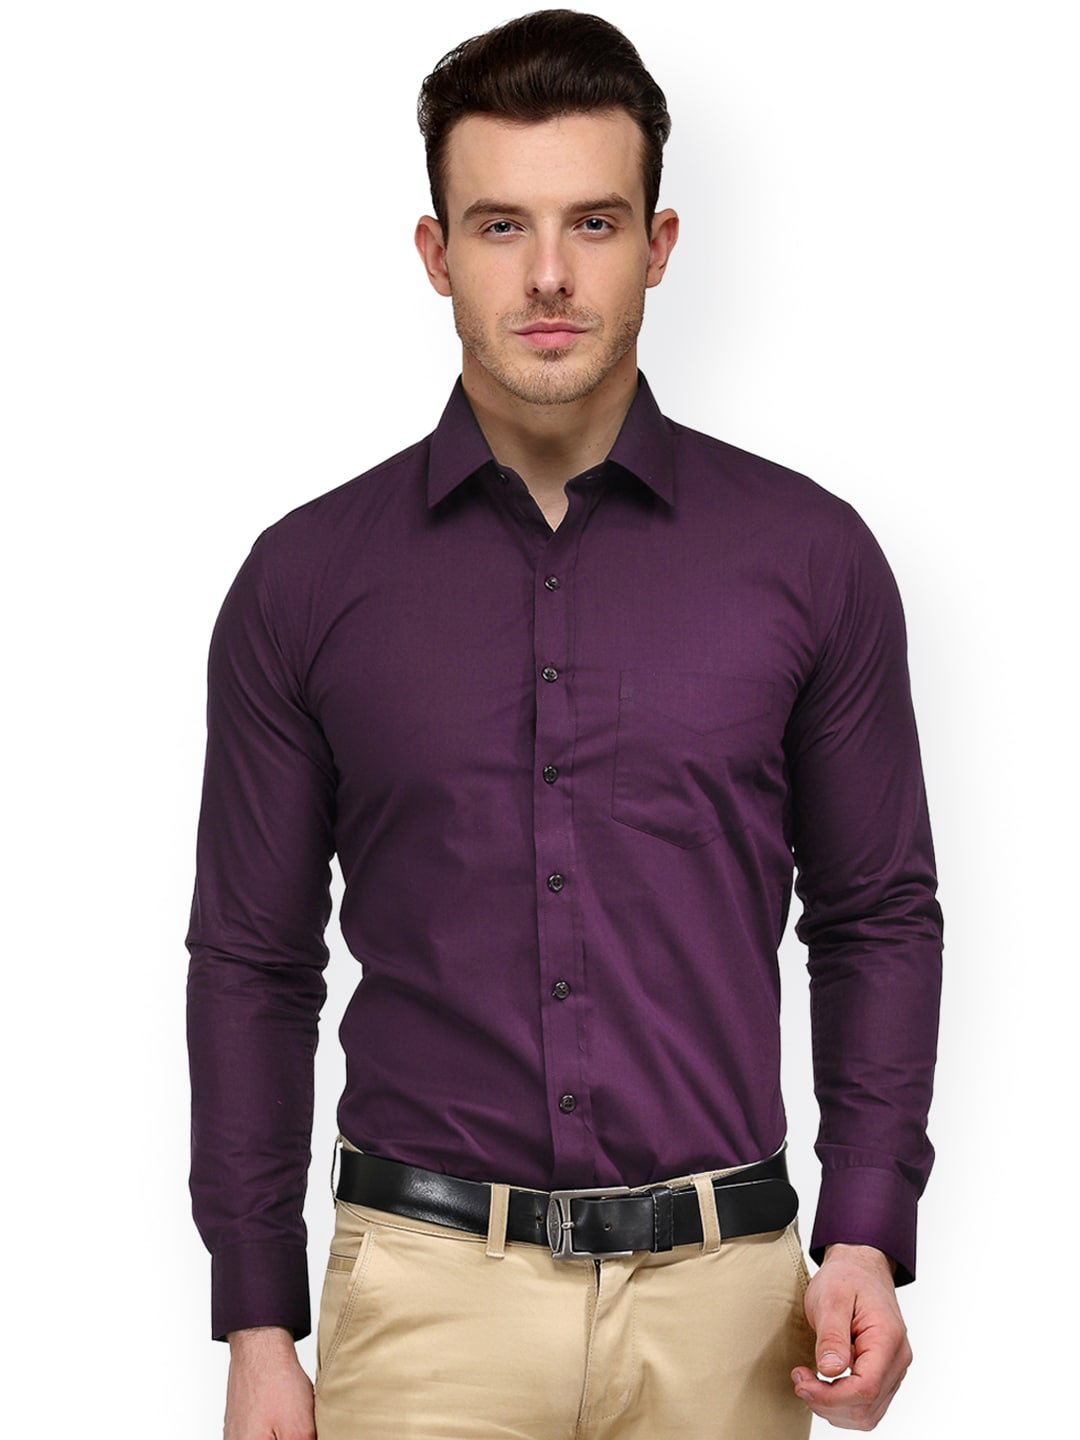 a549f4a1ecd Hancock Shirts - Buy Hancock Shirts online in India